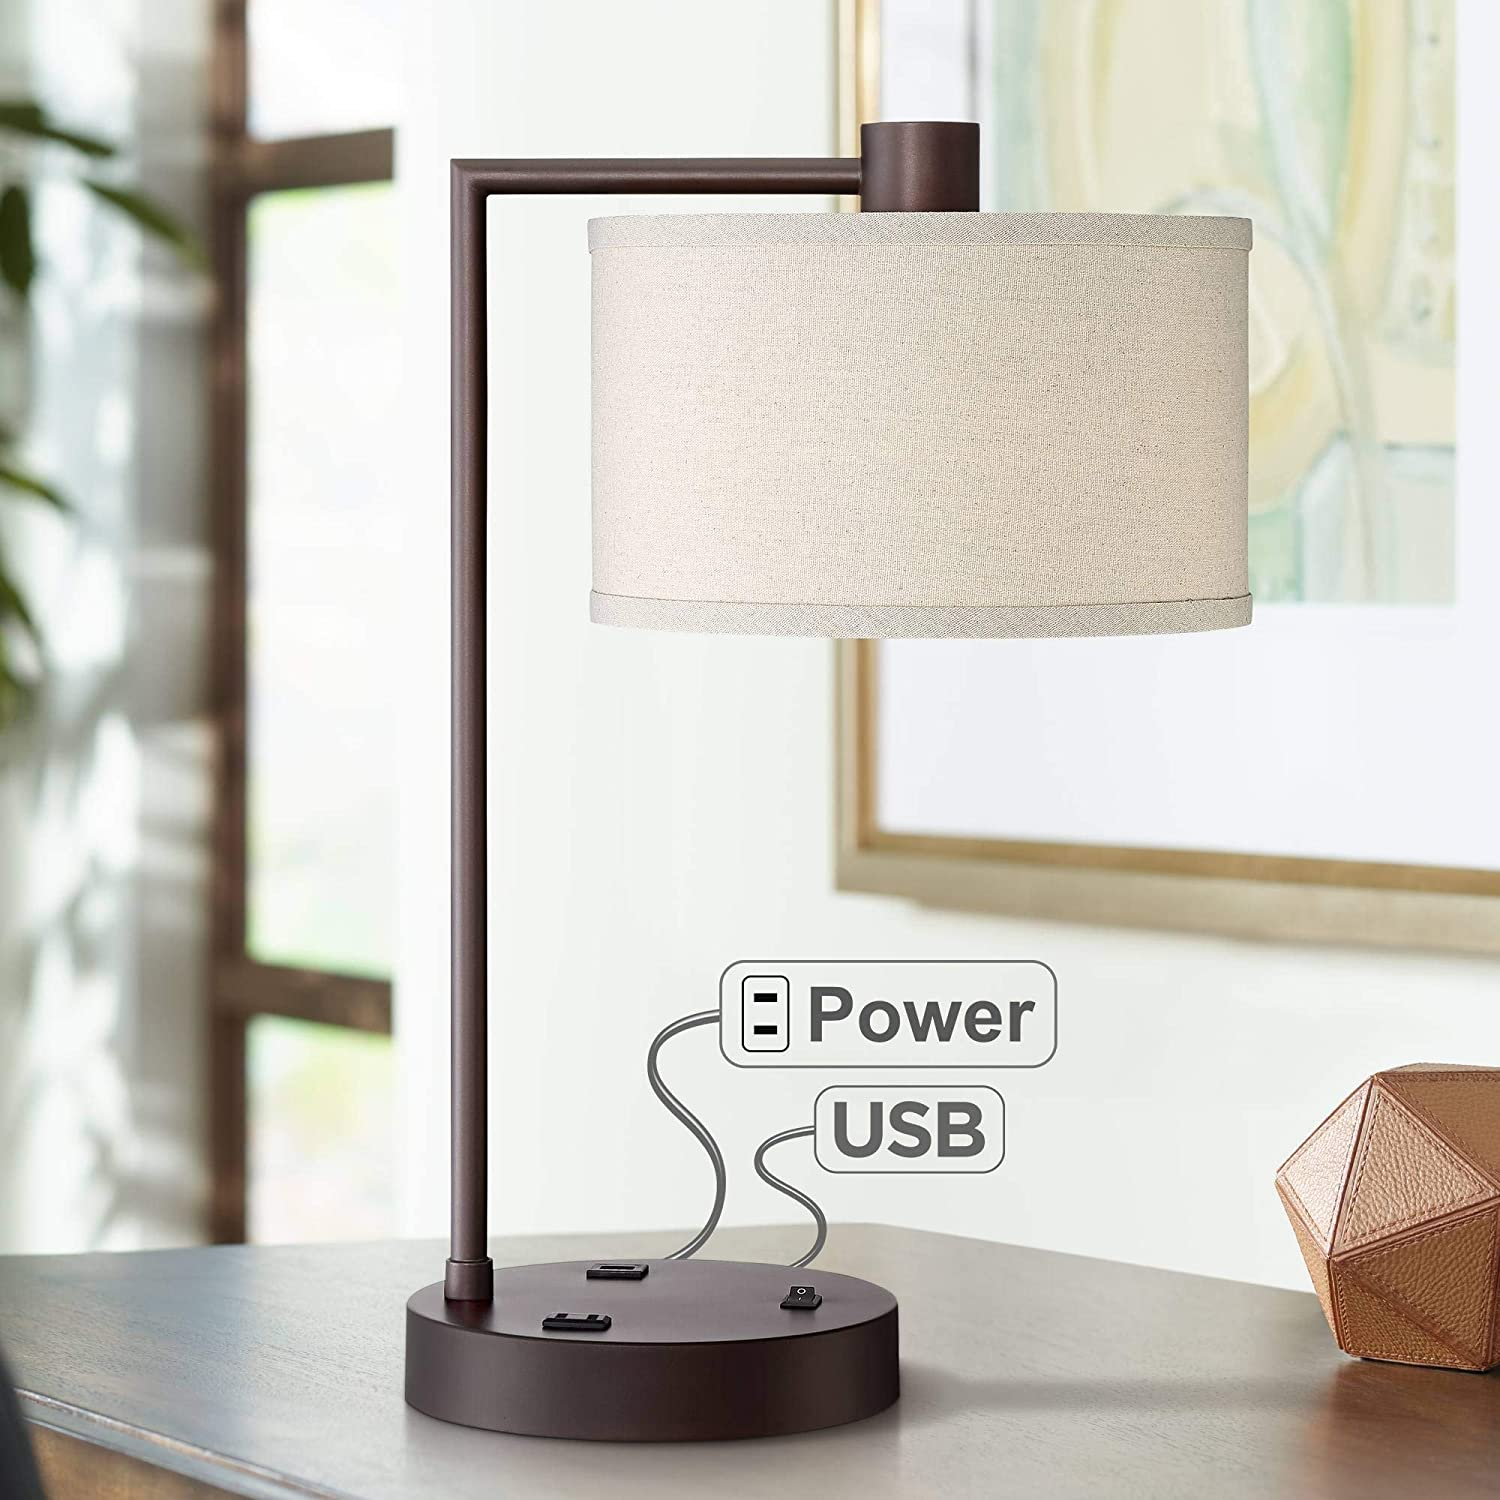 Superb Colby Modern Desk Table Lamp With Usb And Ac Power Outlet In Base Bronze Metal Linen Uno Fitter Drum Shade For Living Room Bedroom Bedside Nightstand Download Free Architecture Designs Embacsunscenecom